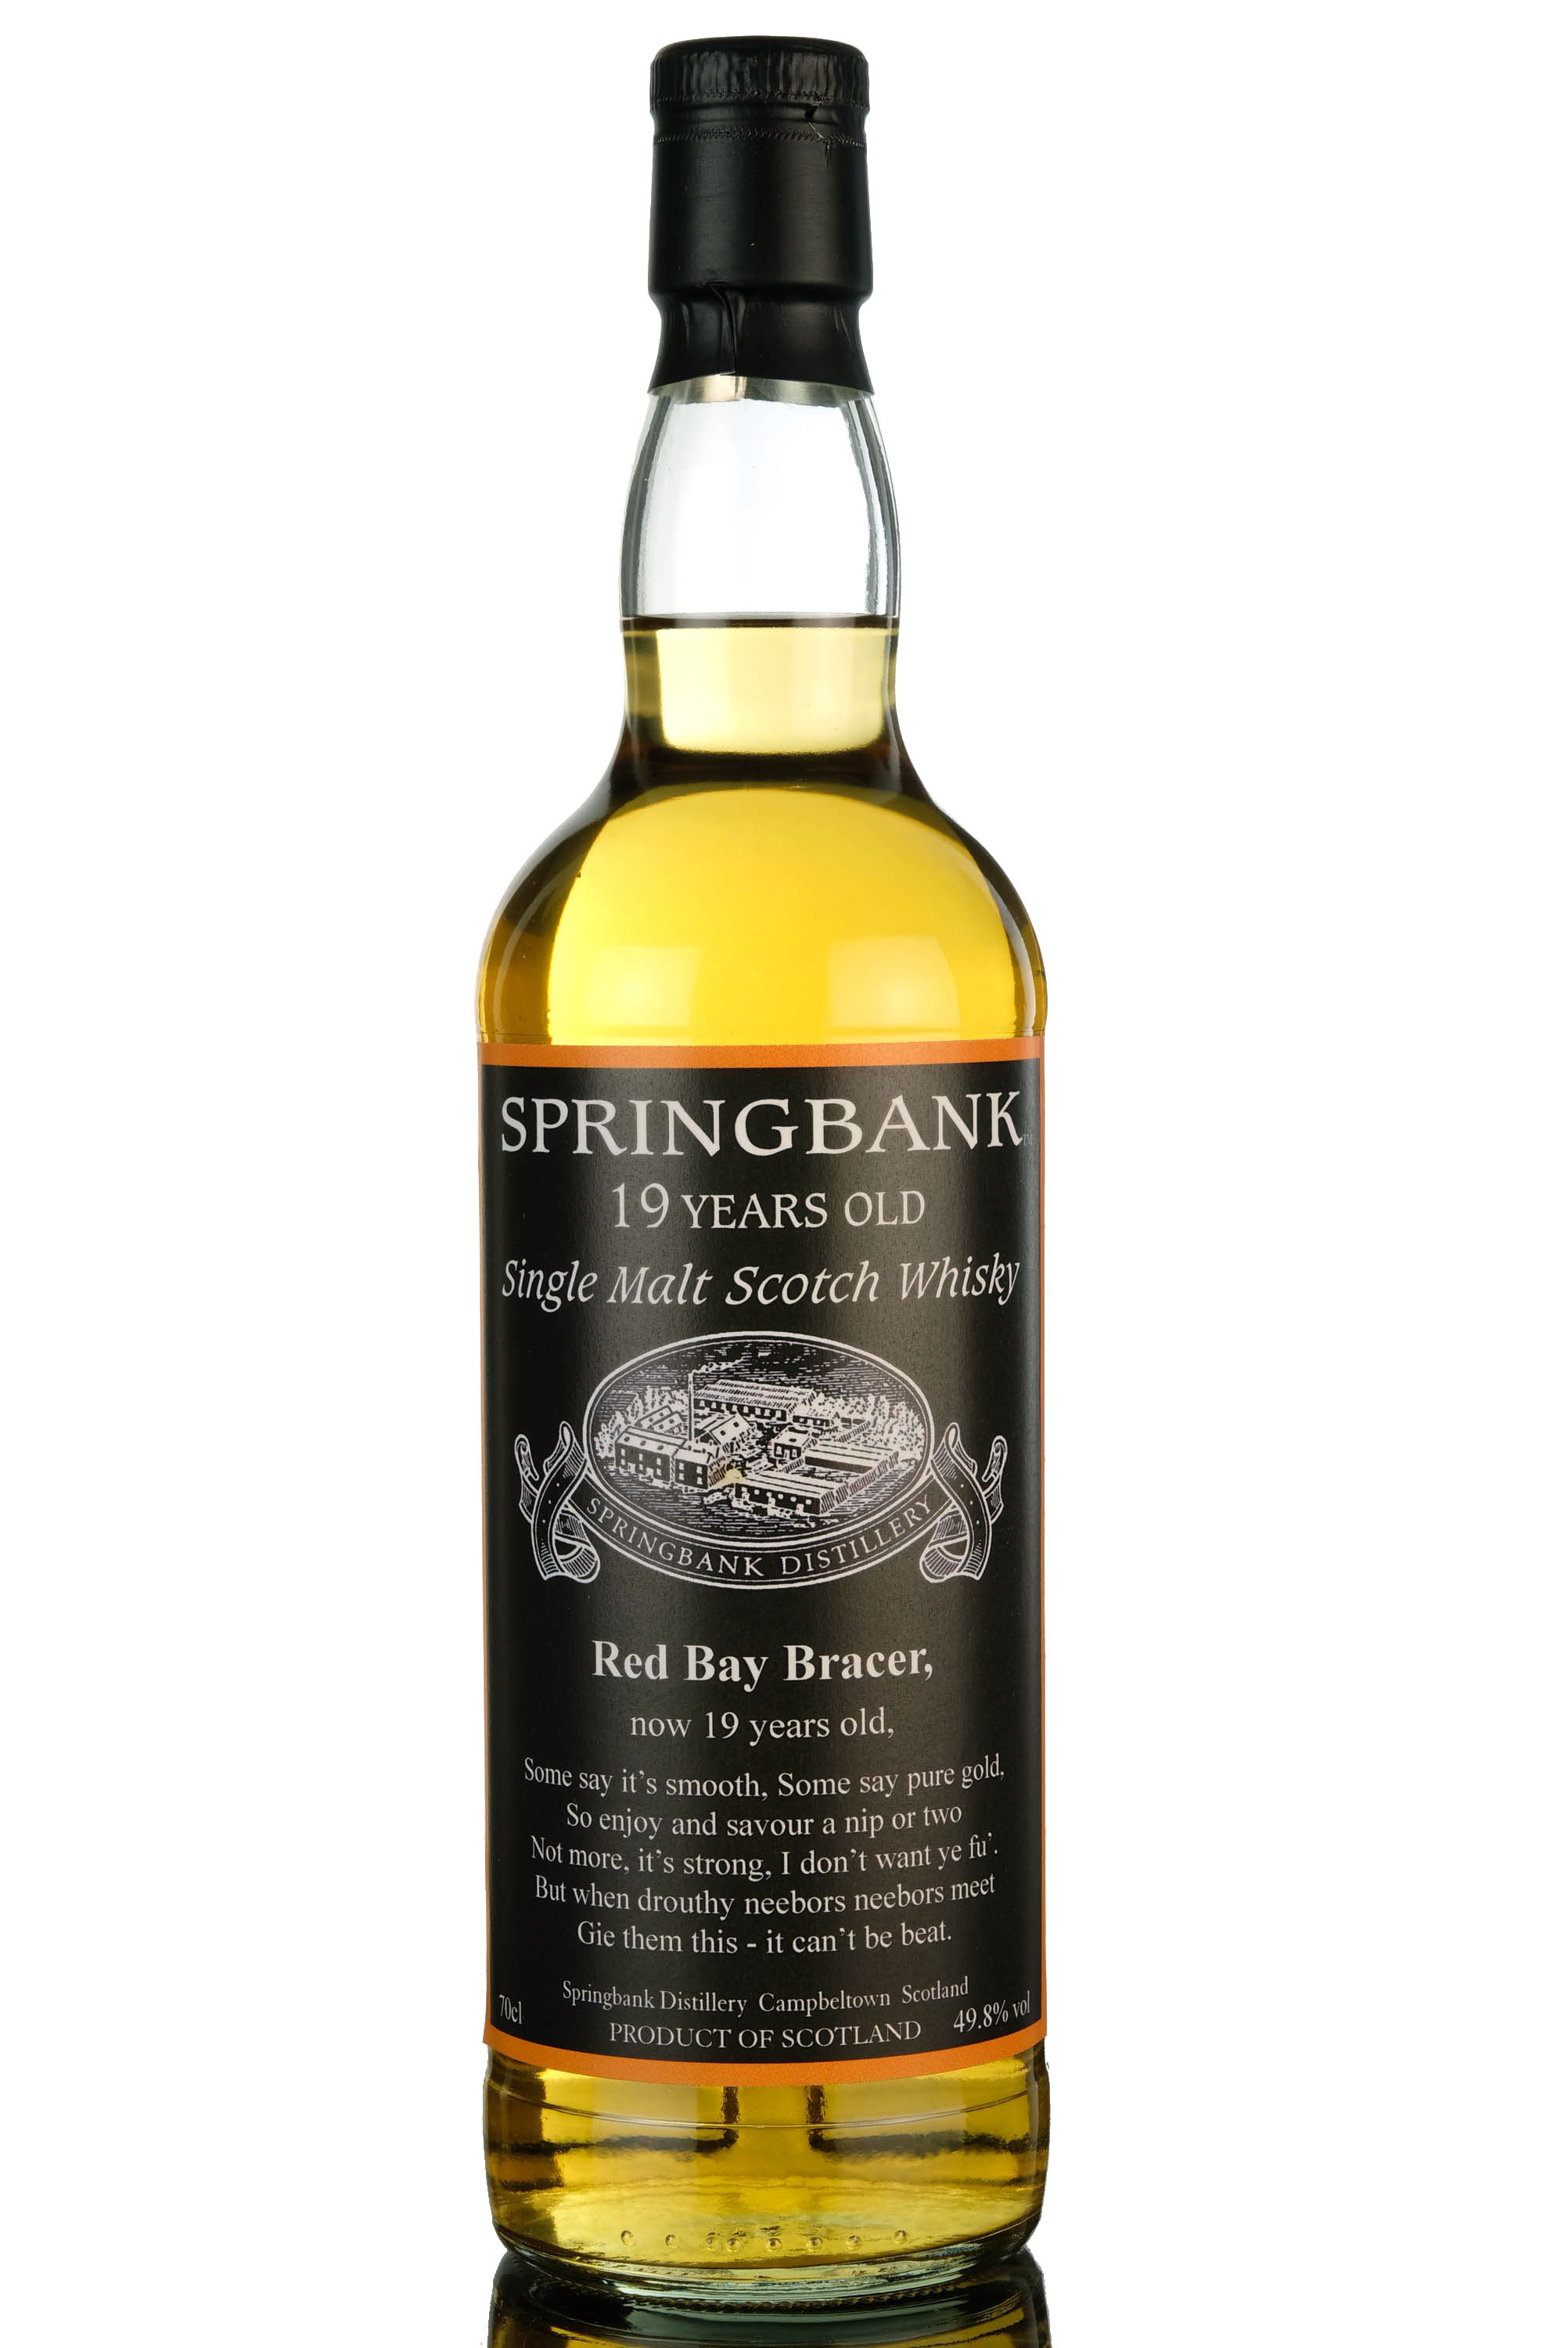 springbank 19 year old - red bay bracer